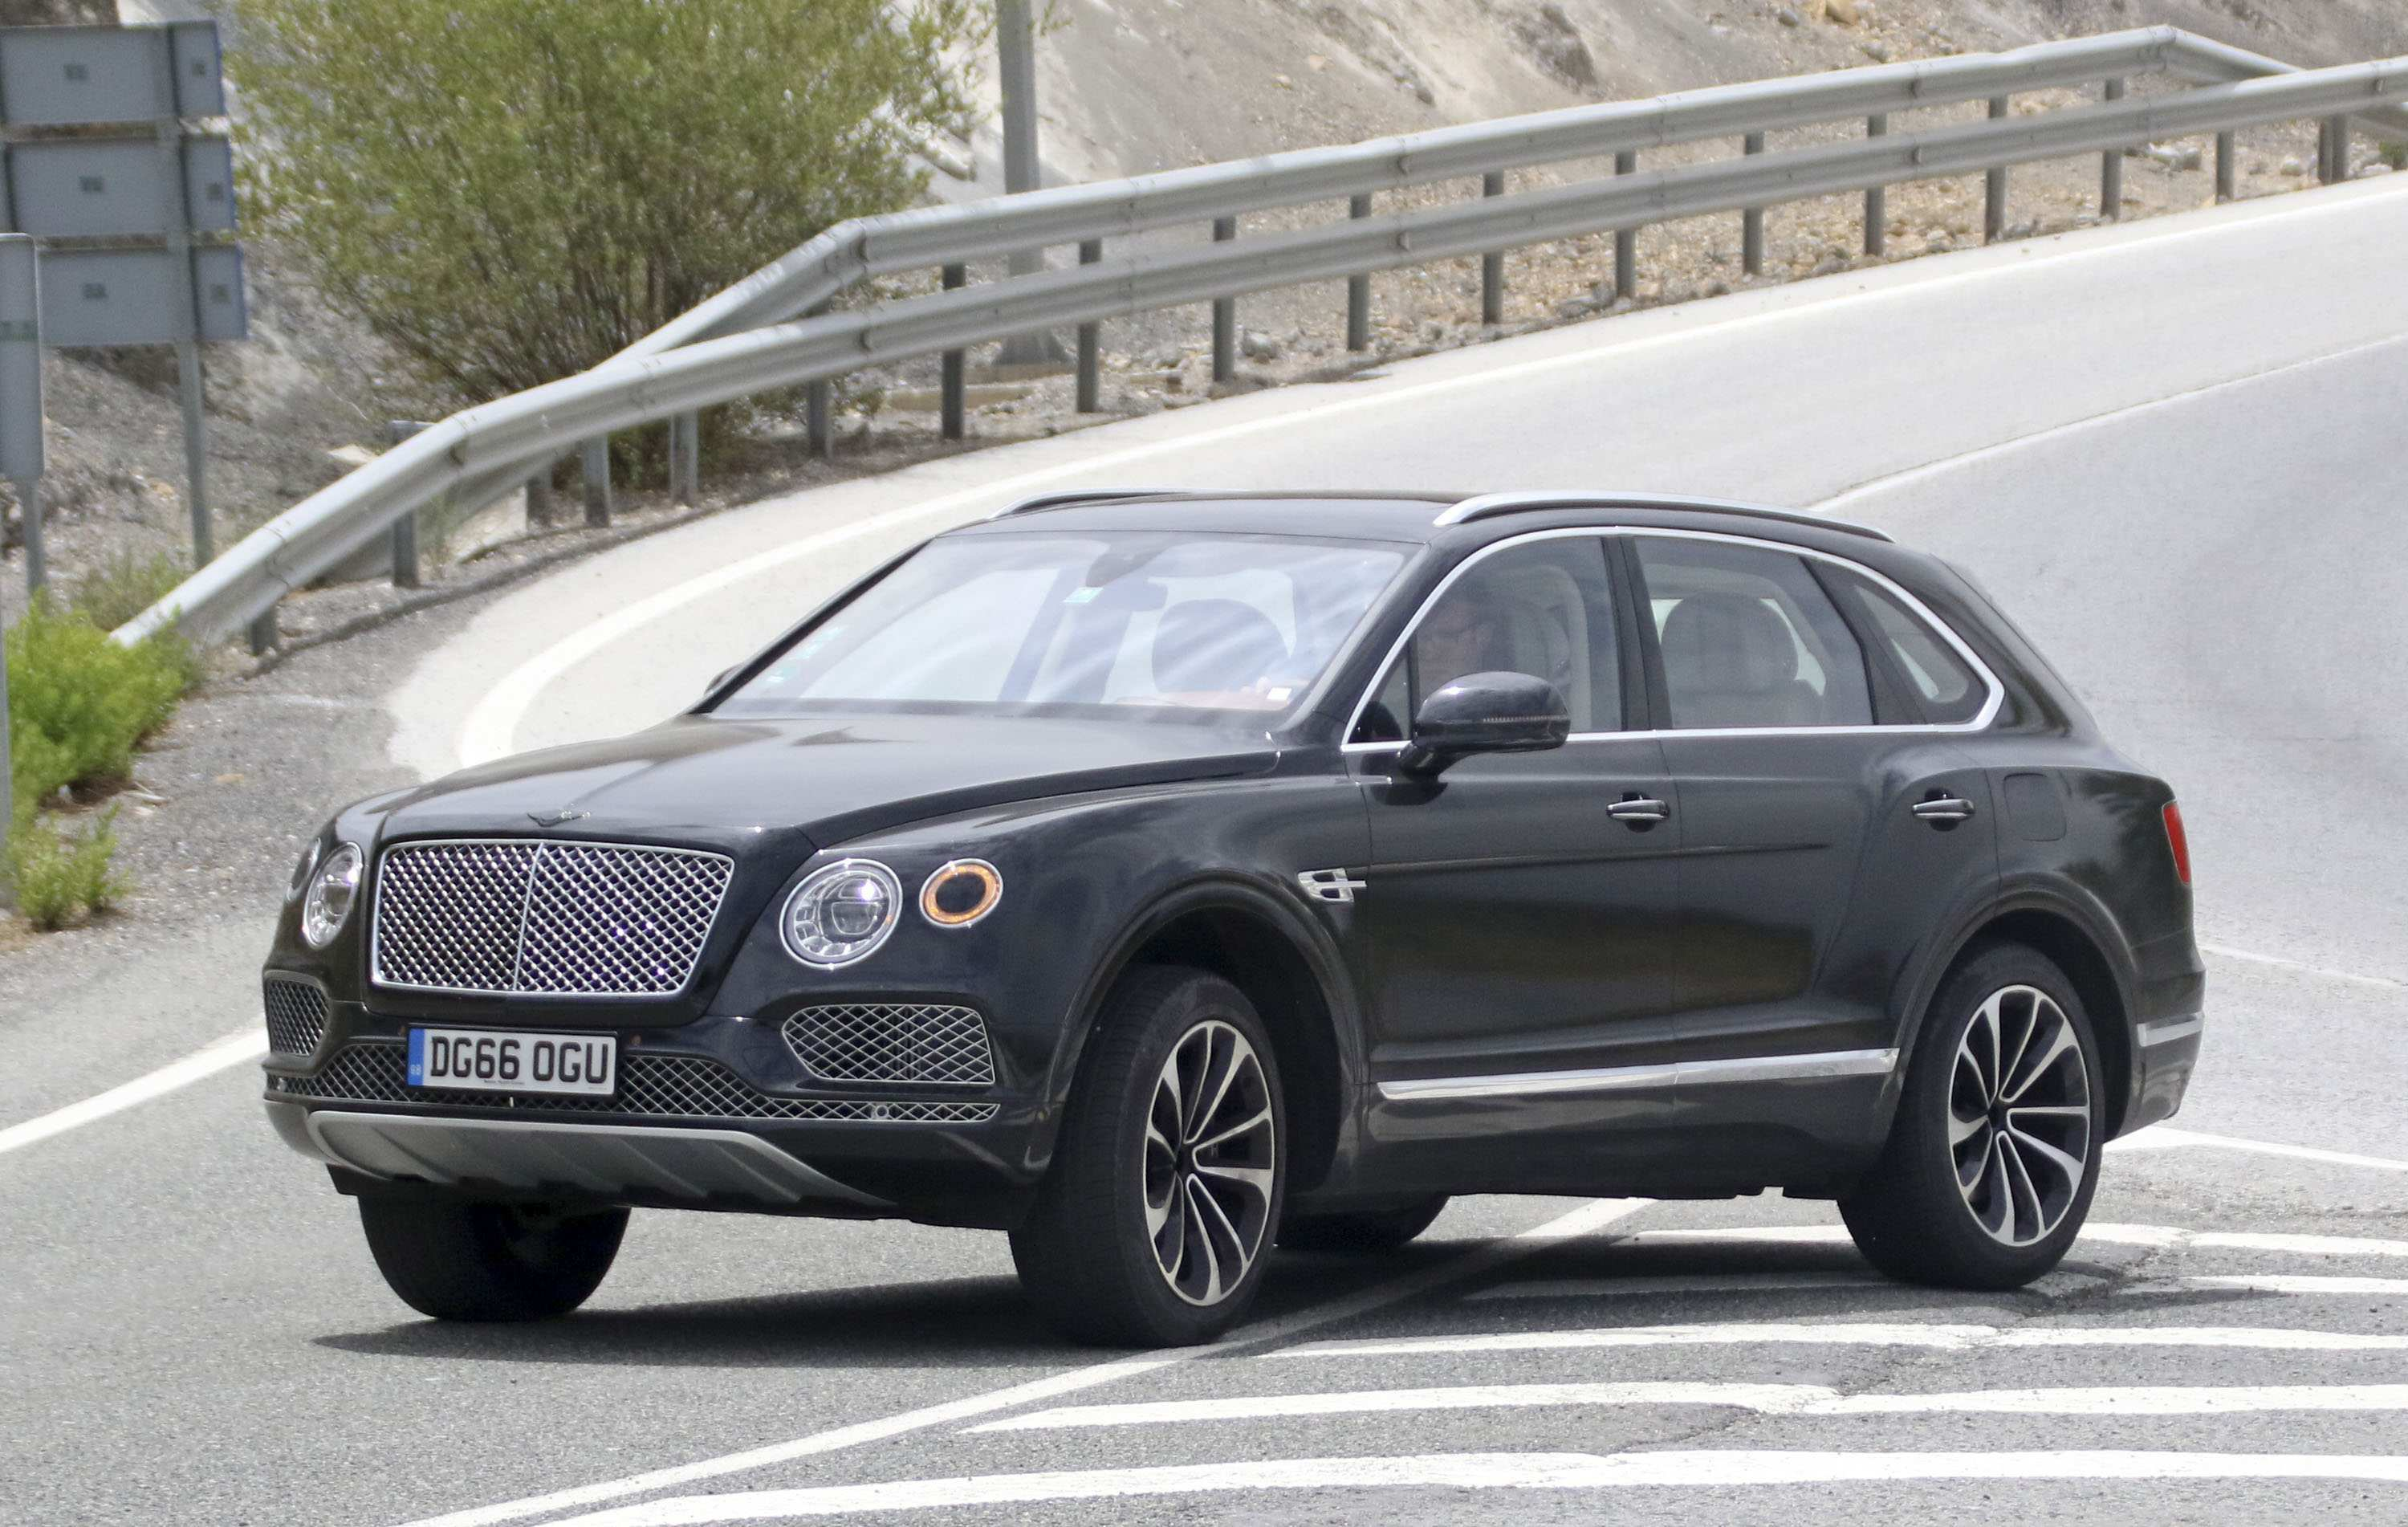 31 Great 2019 Bentley Bentayga Release Date New Review with 2019 Bentley Bentayga Release Date